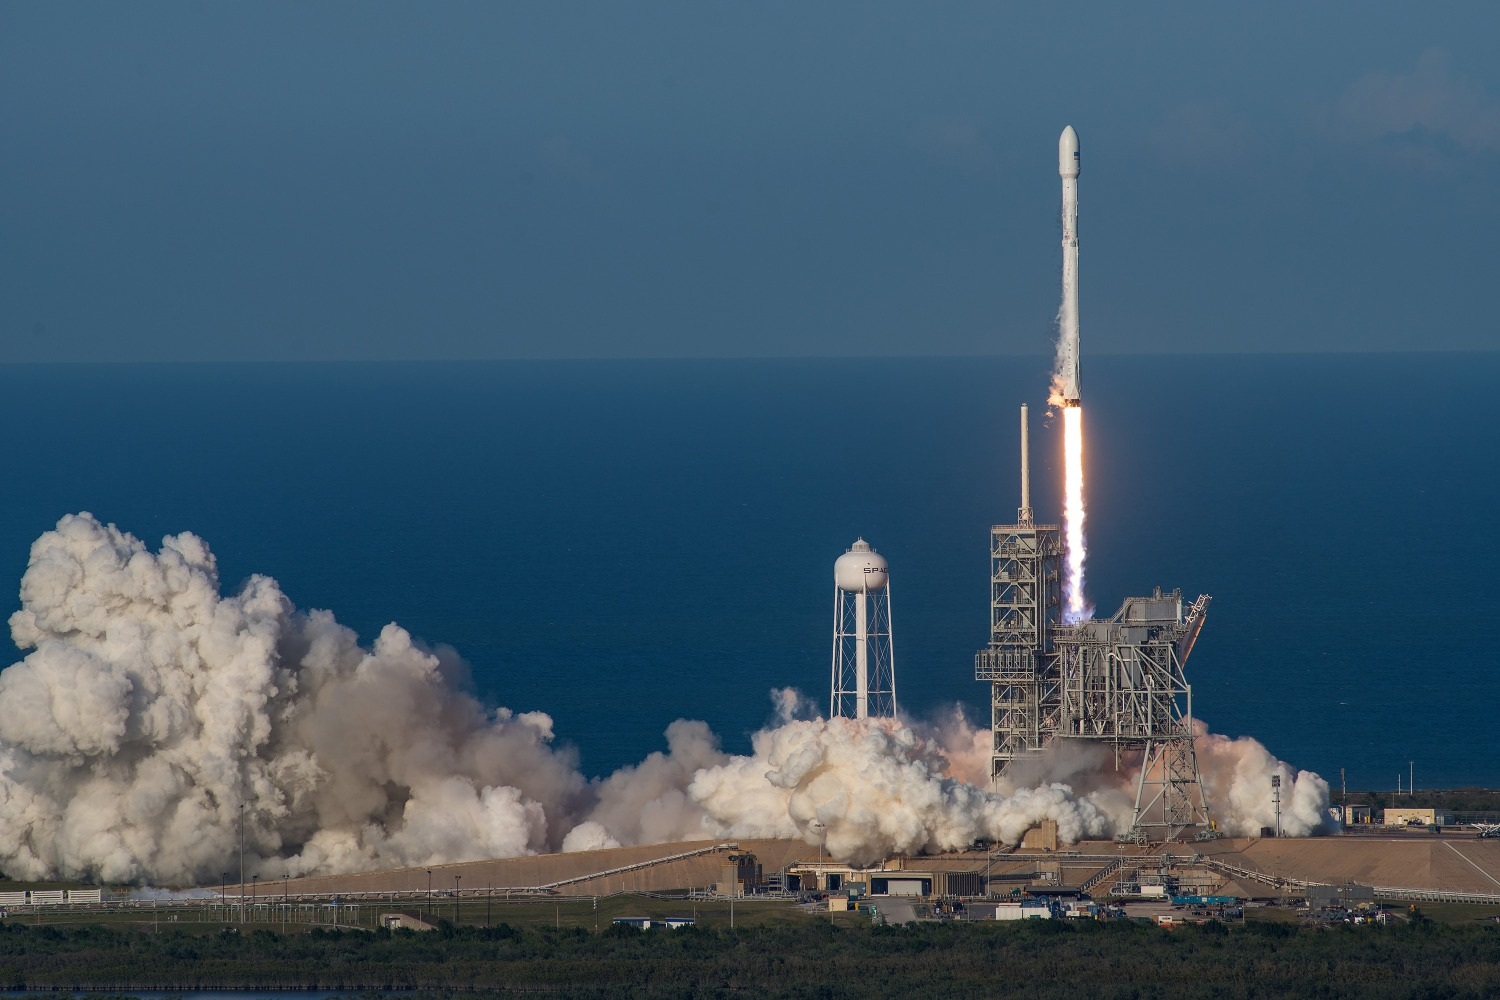 spacex florida - photo #40